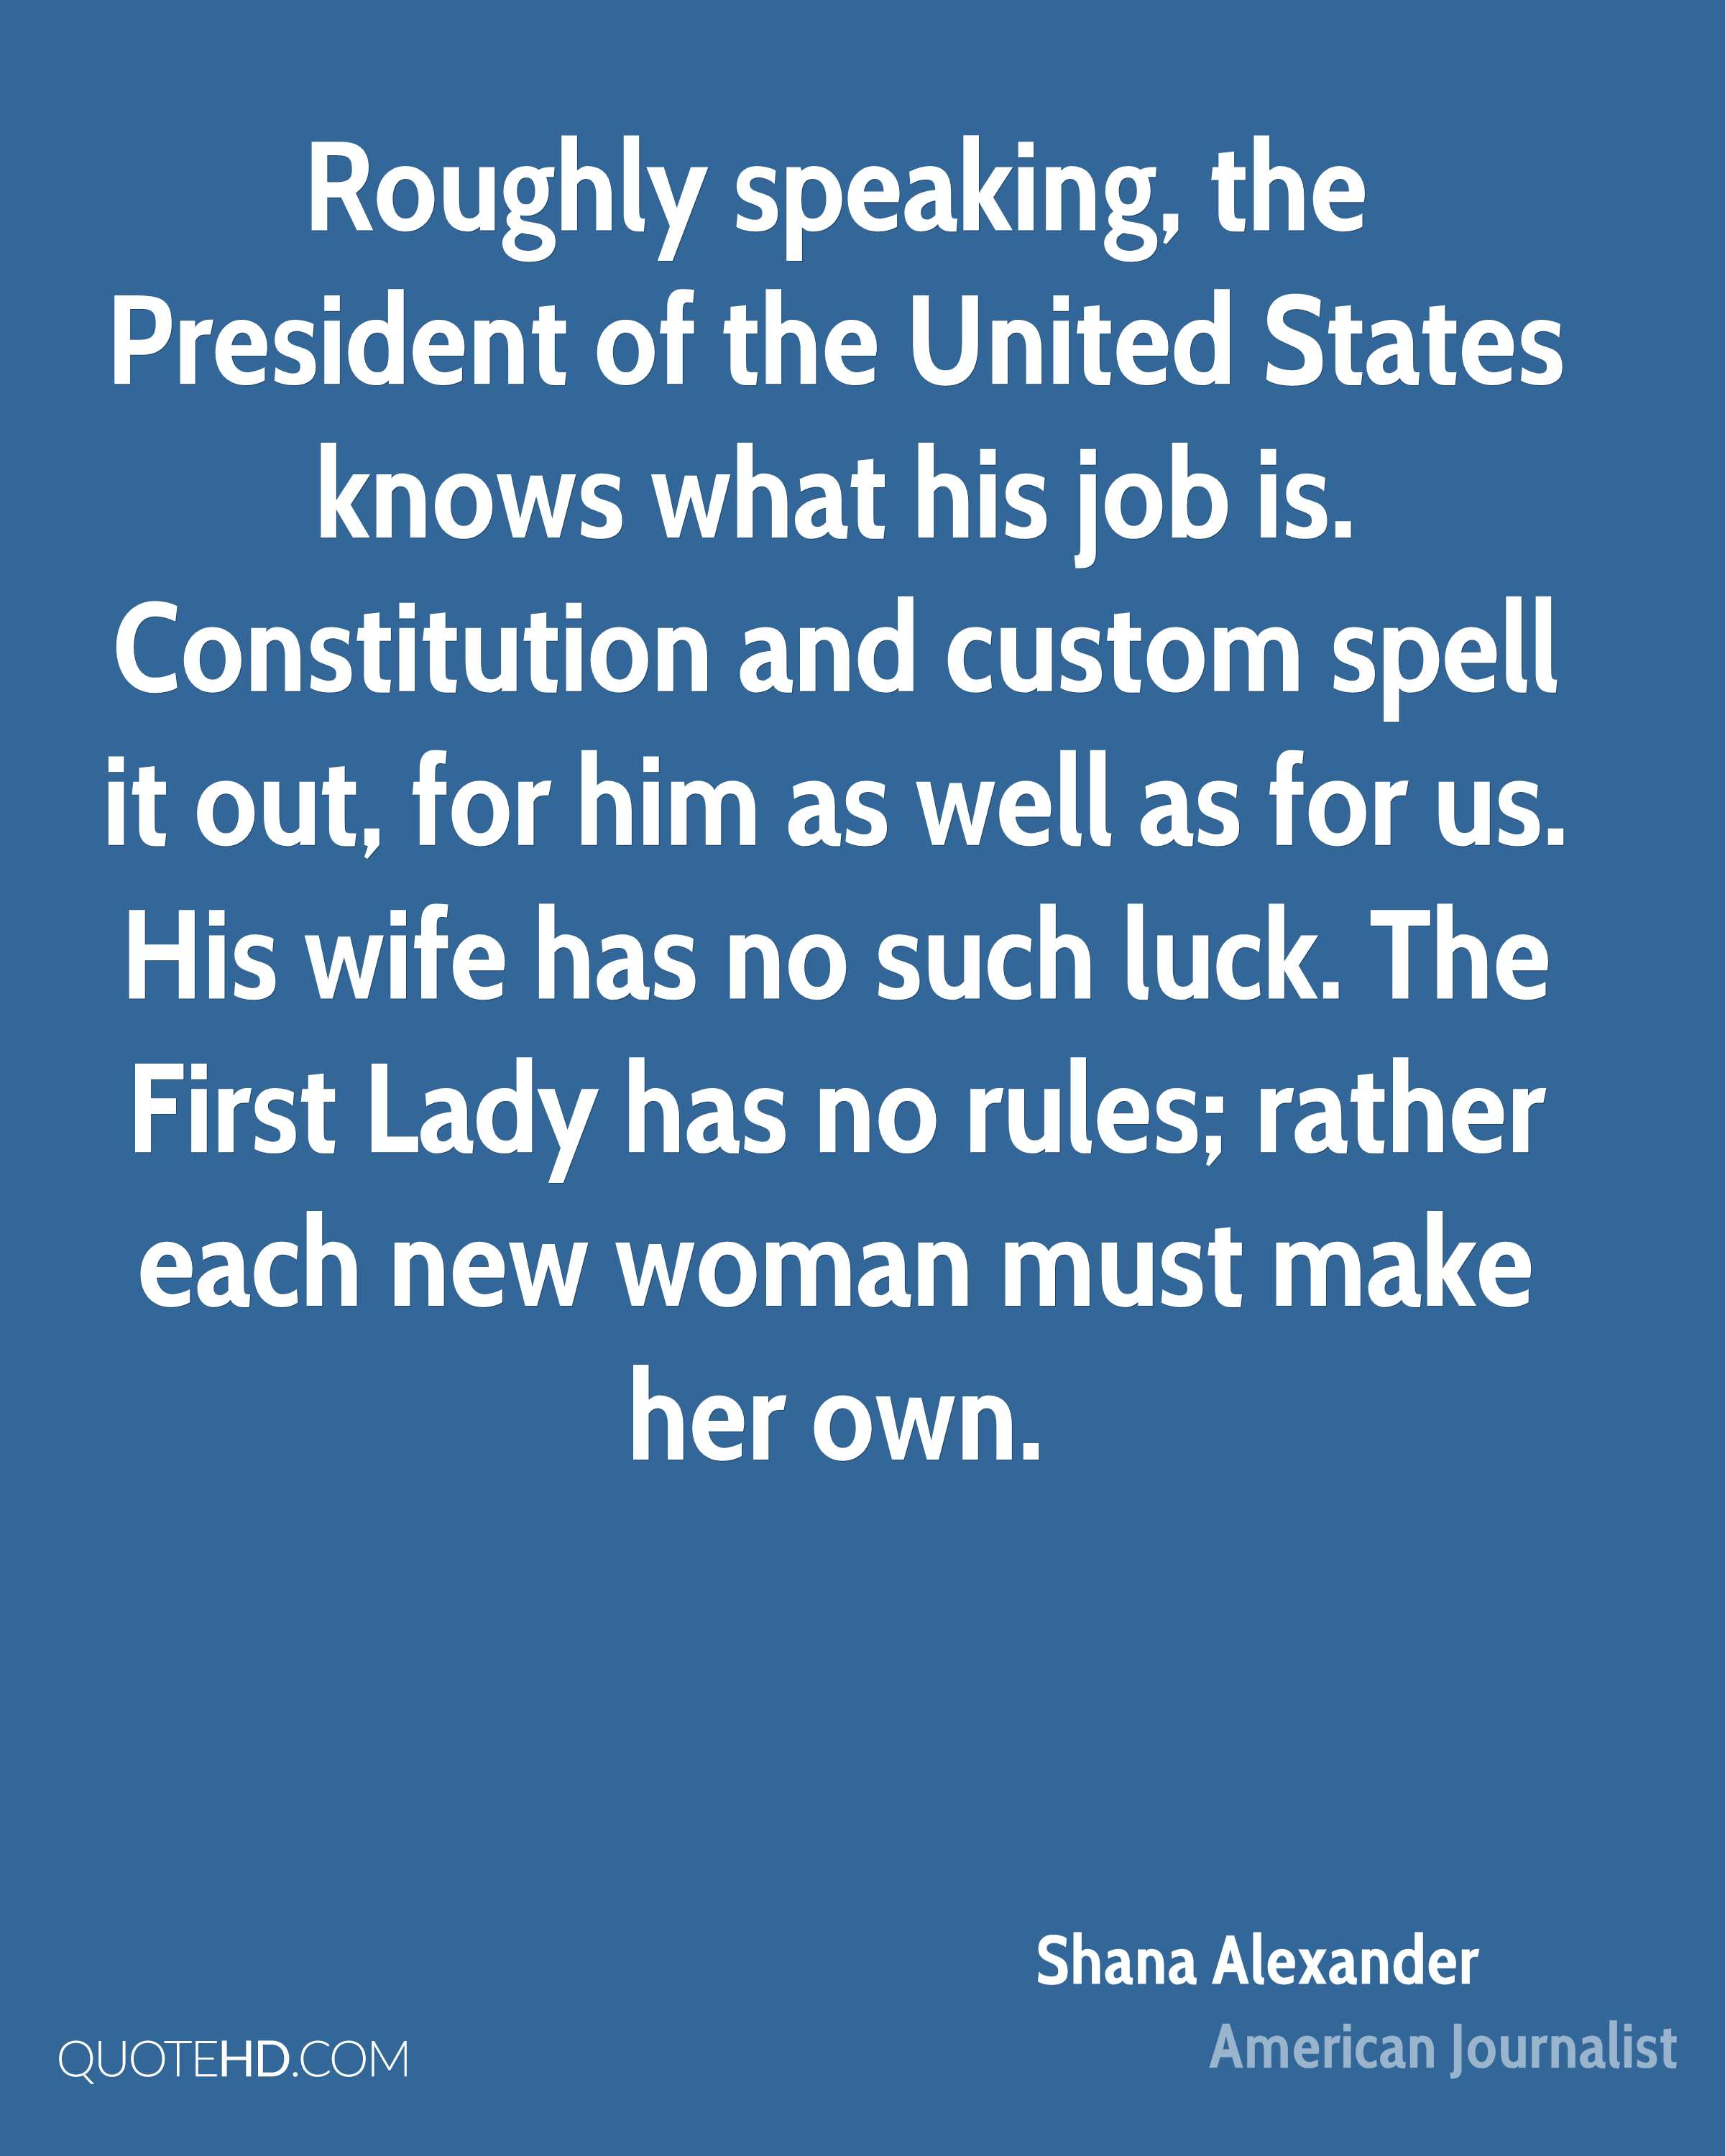 Roughly speaking, the President of the United States knows what his job is. Constitution and custom spell it out, for him as well as for us. His wife has no such luck. The First Lady has no rules; rather each new woman must make her own.